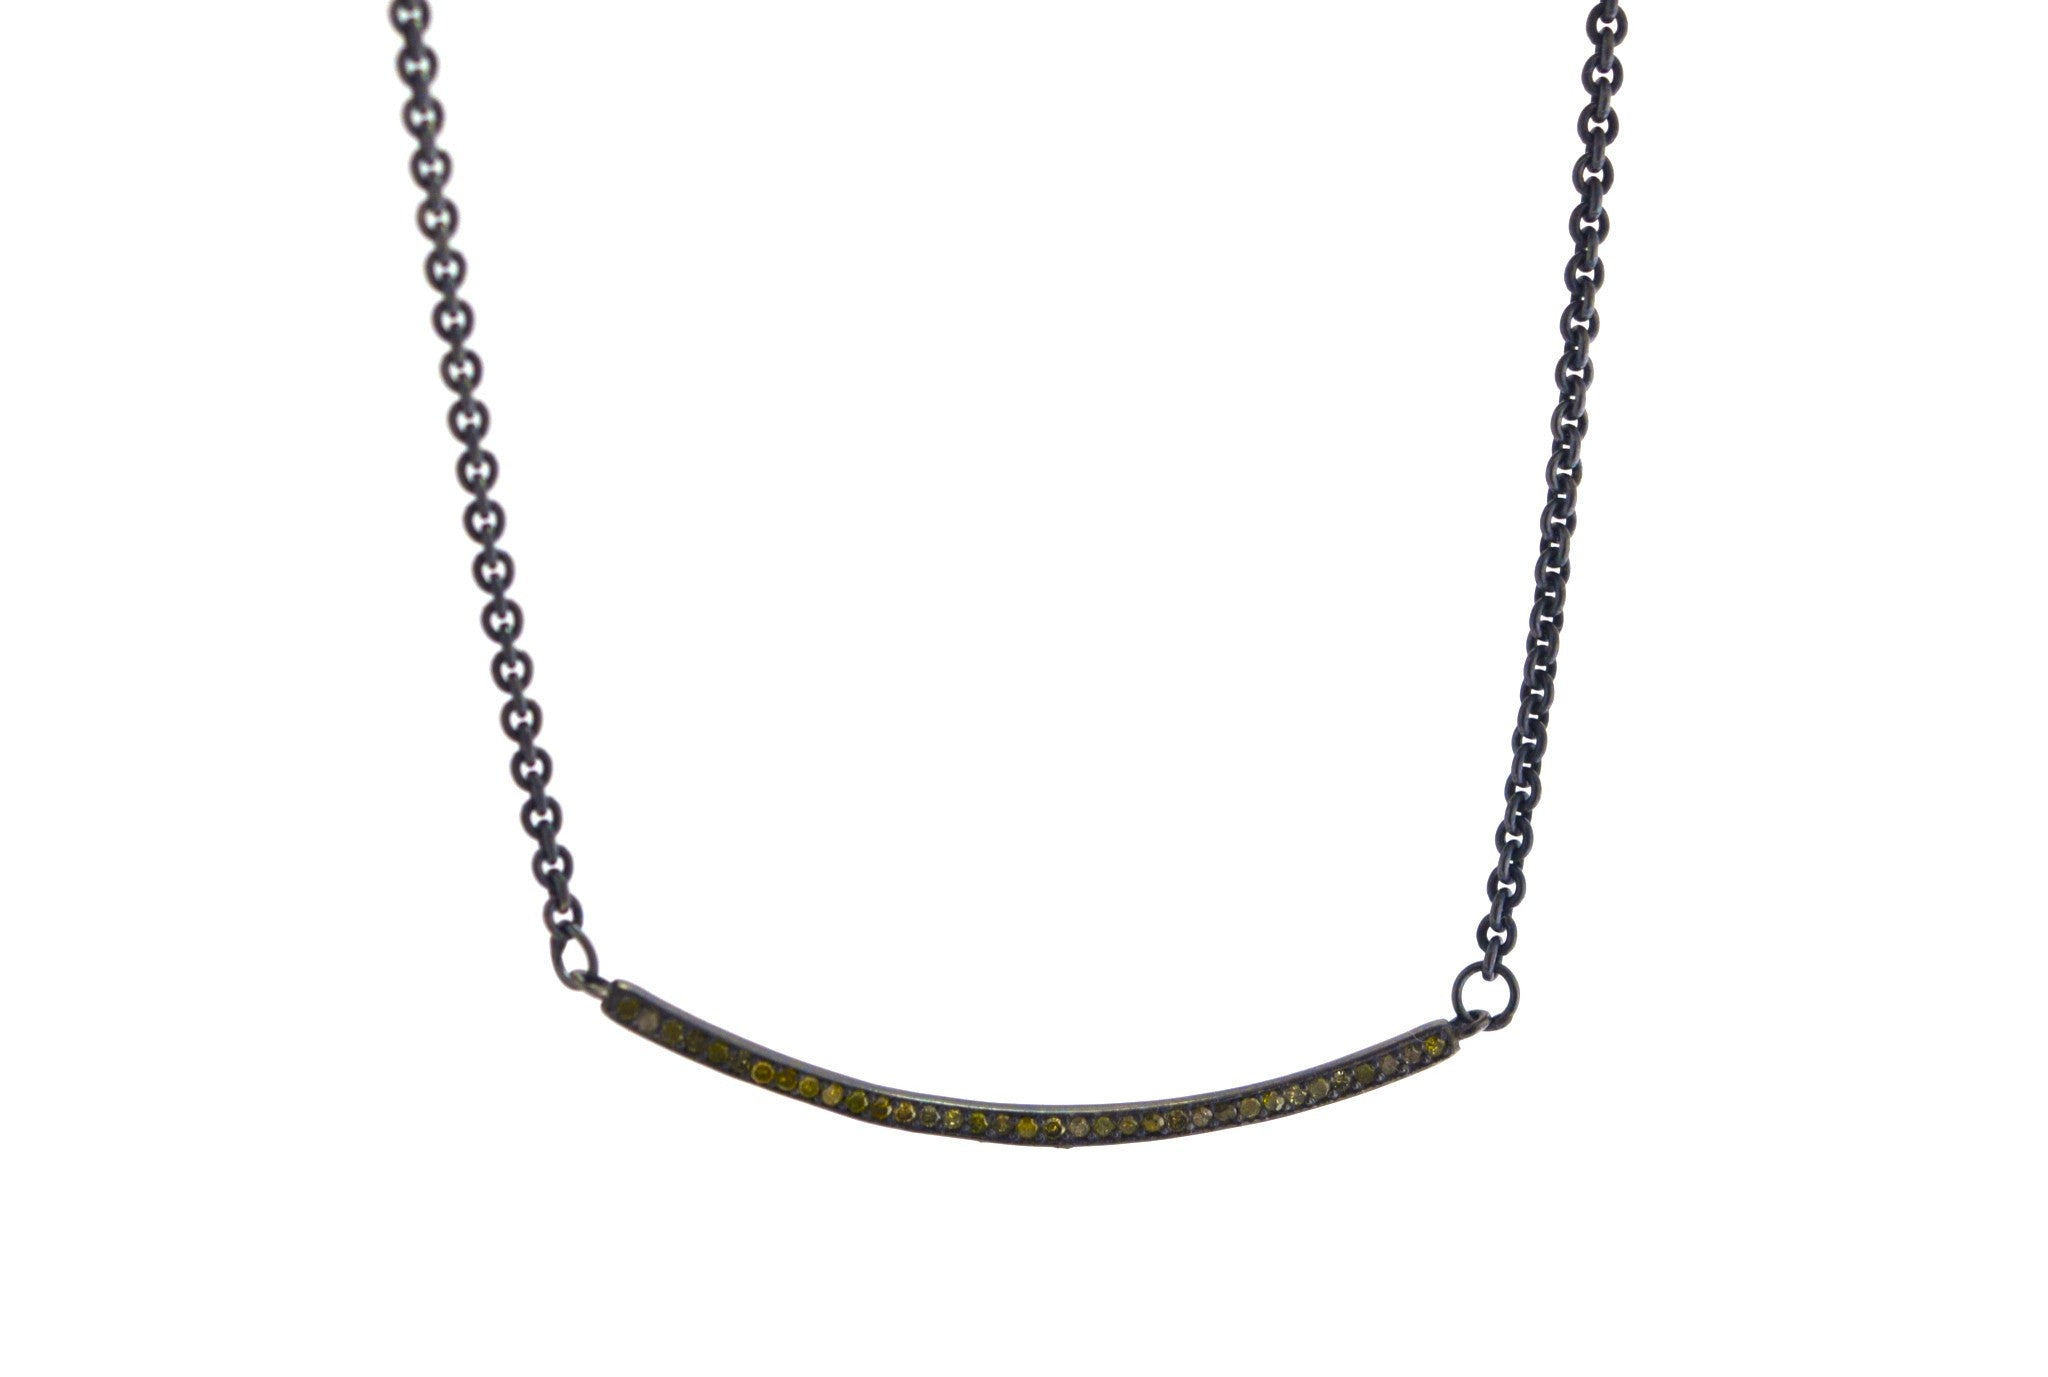 necklace / silver + diamond rose cut curved bar necklace